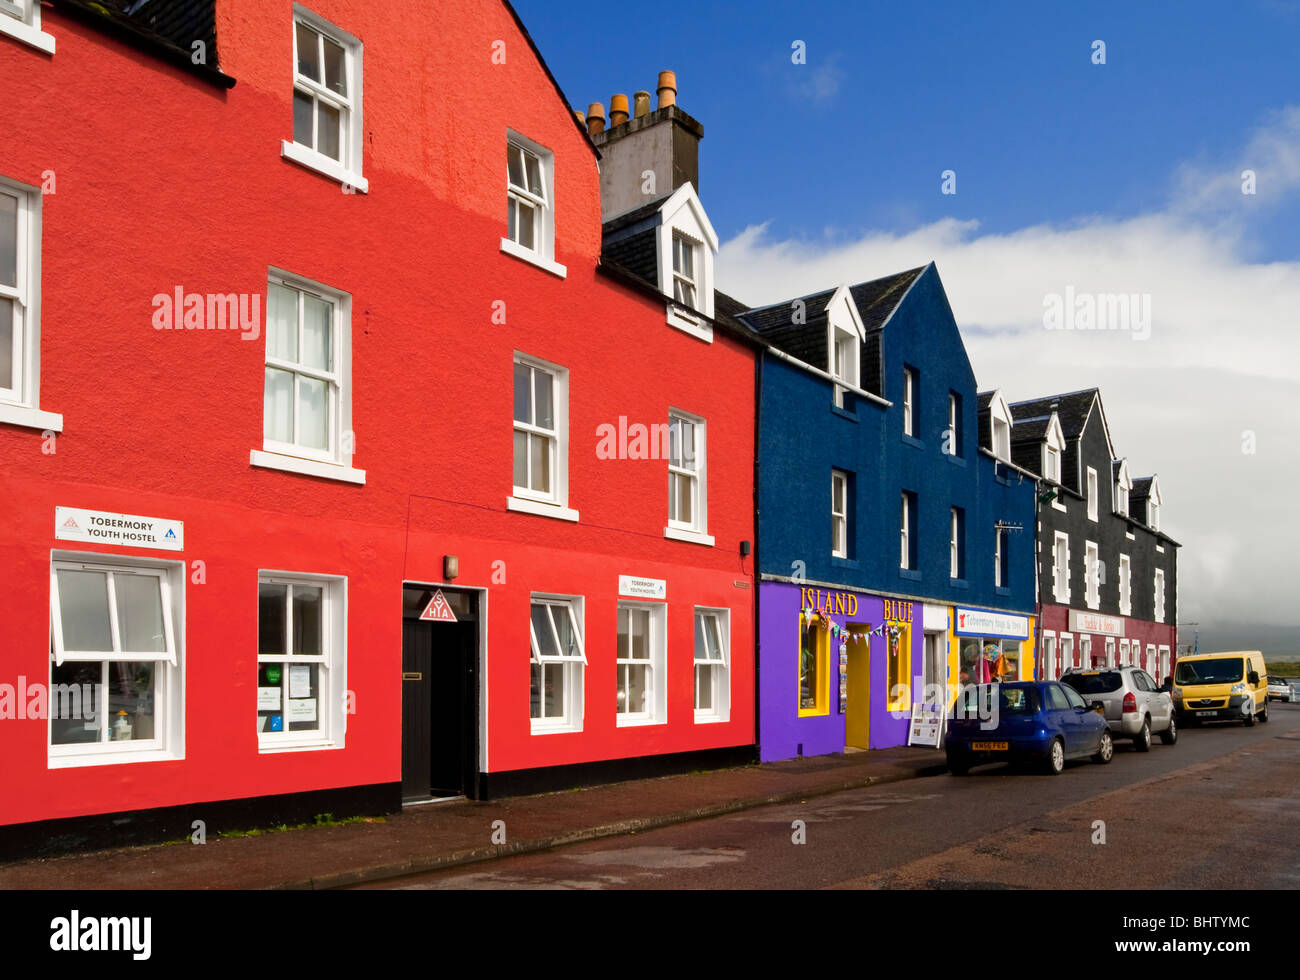 Brightly painted houses in the village of Tobermory on the Isle of Mull Inner Hebrides Scotland used as location - Stock Image